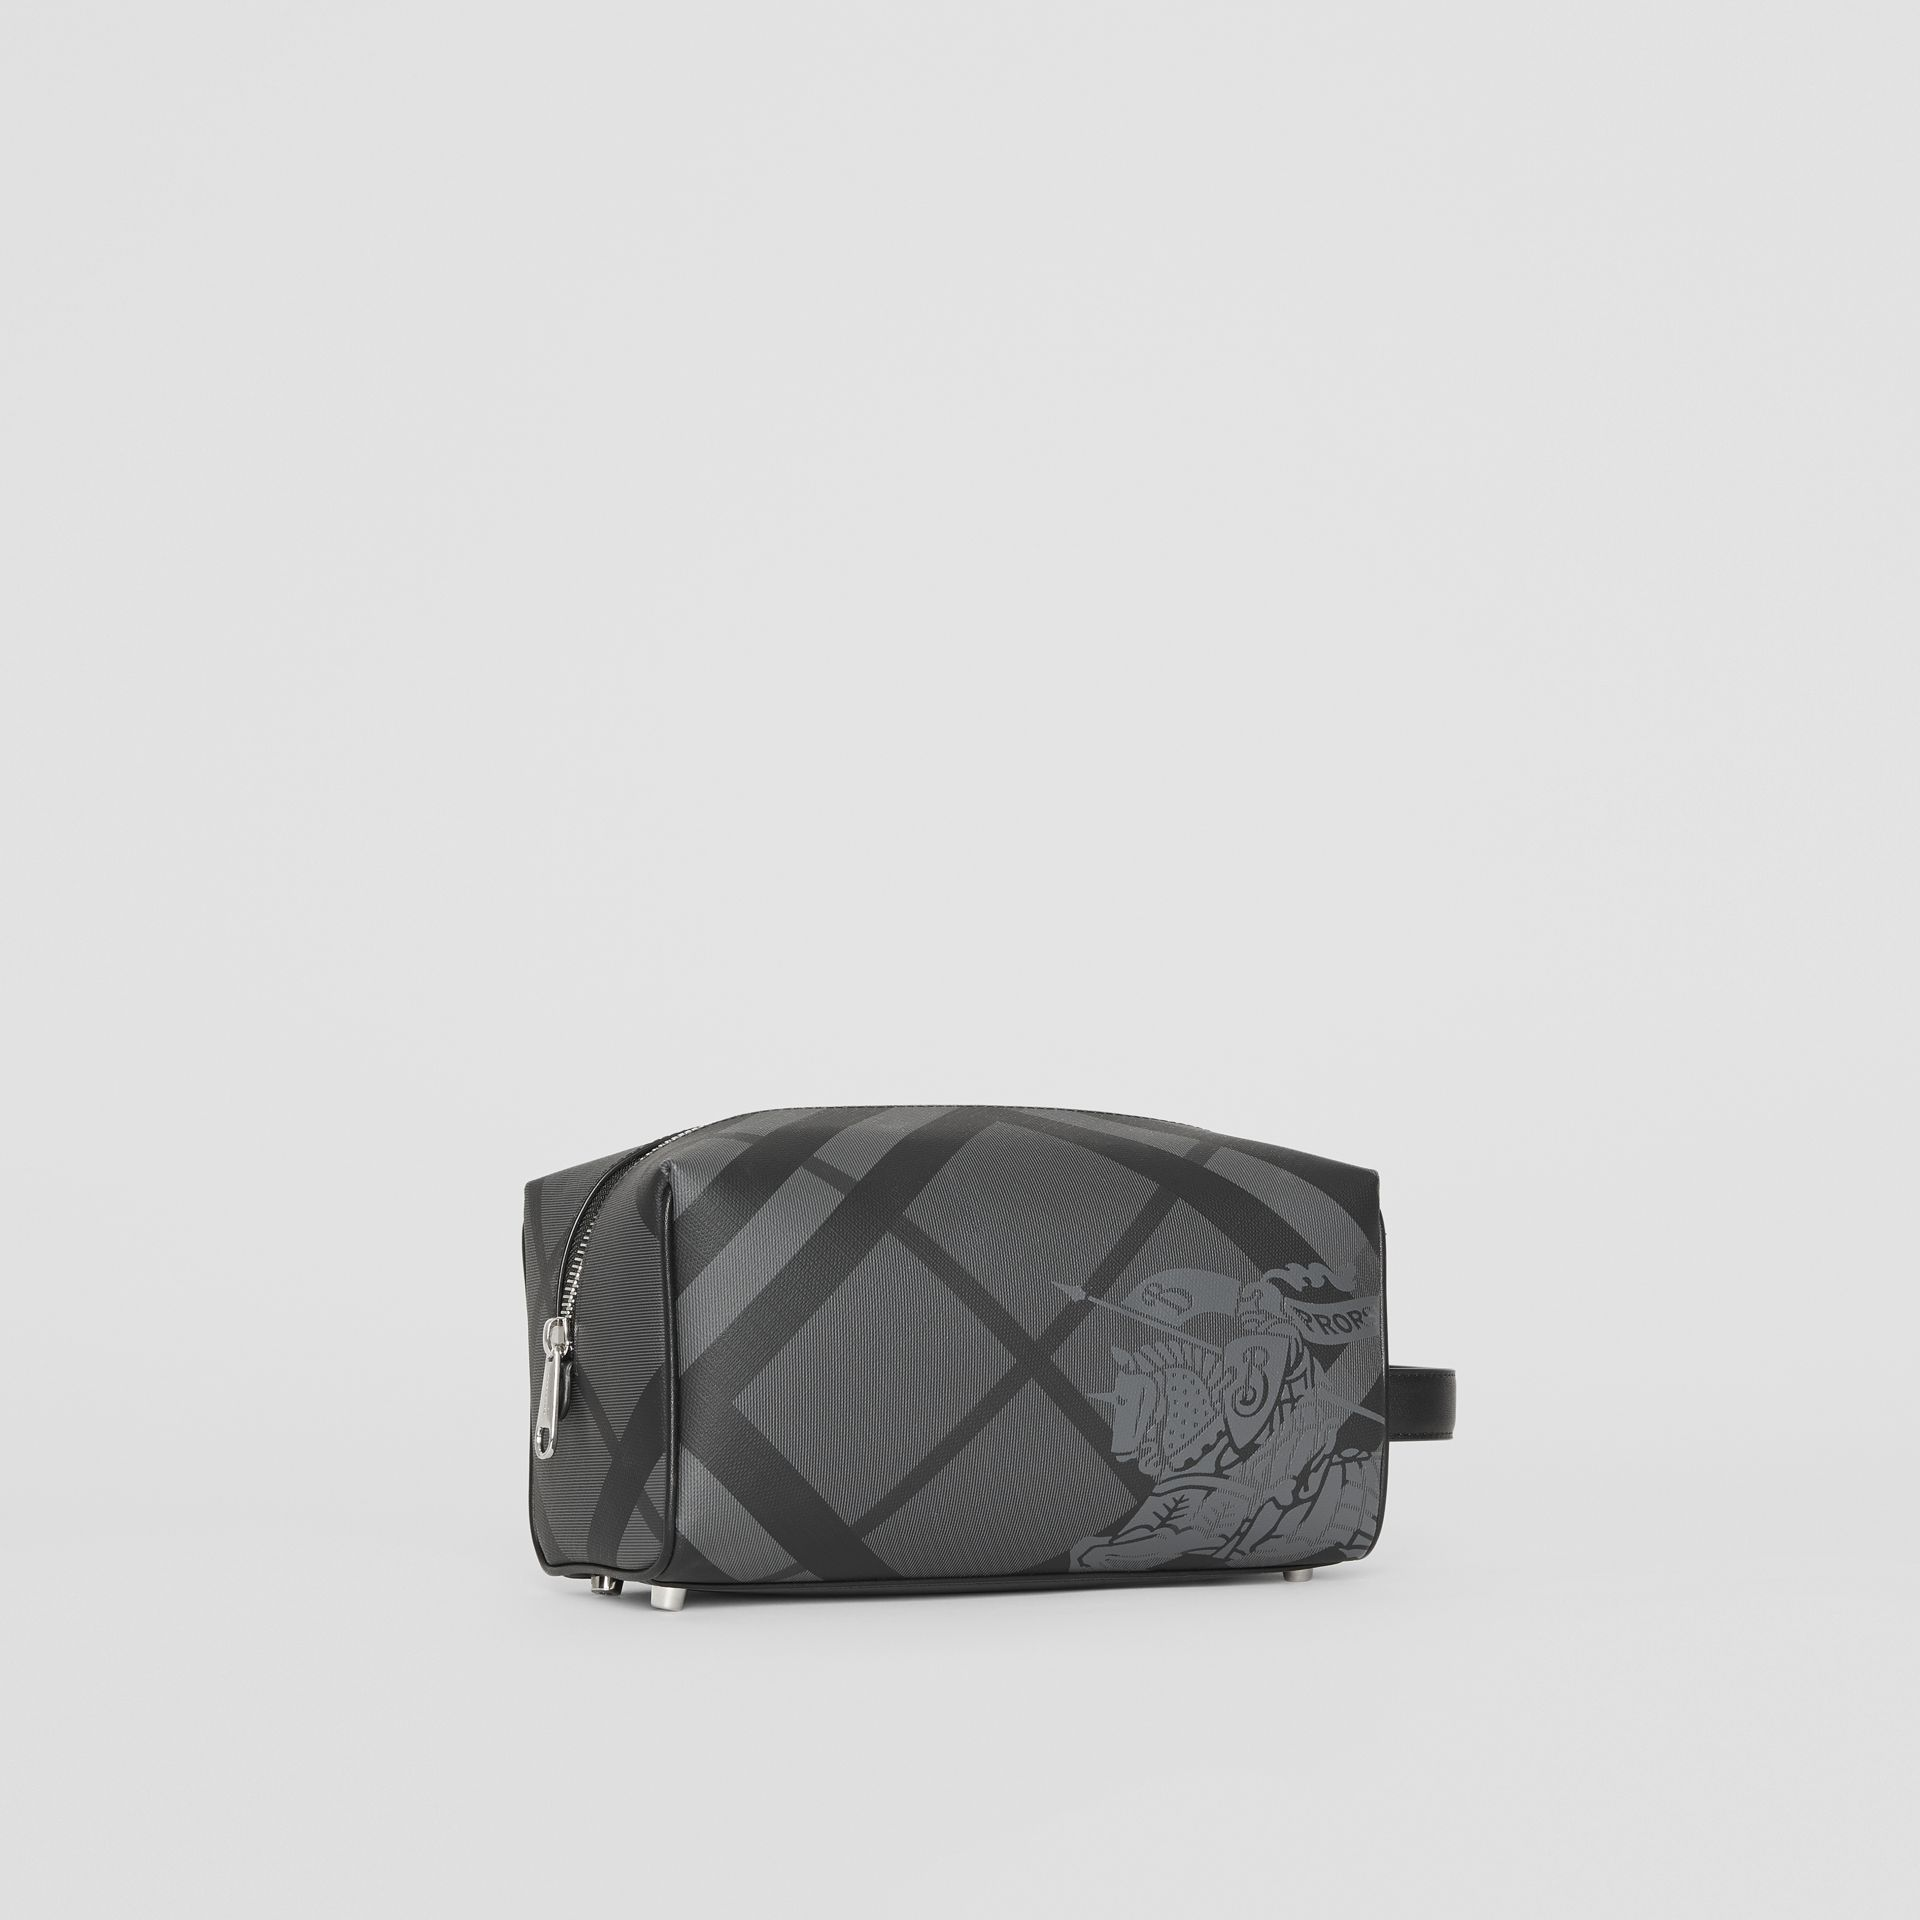 EKD London Check and Leather Pouch in Charcoal/black - Men | Burberry United States - gallery image 6